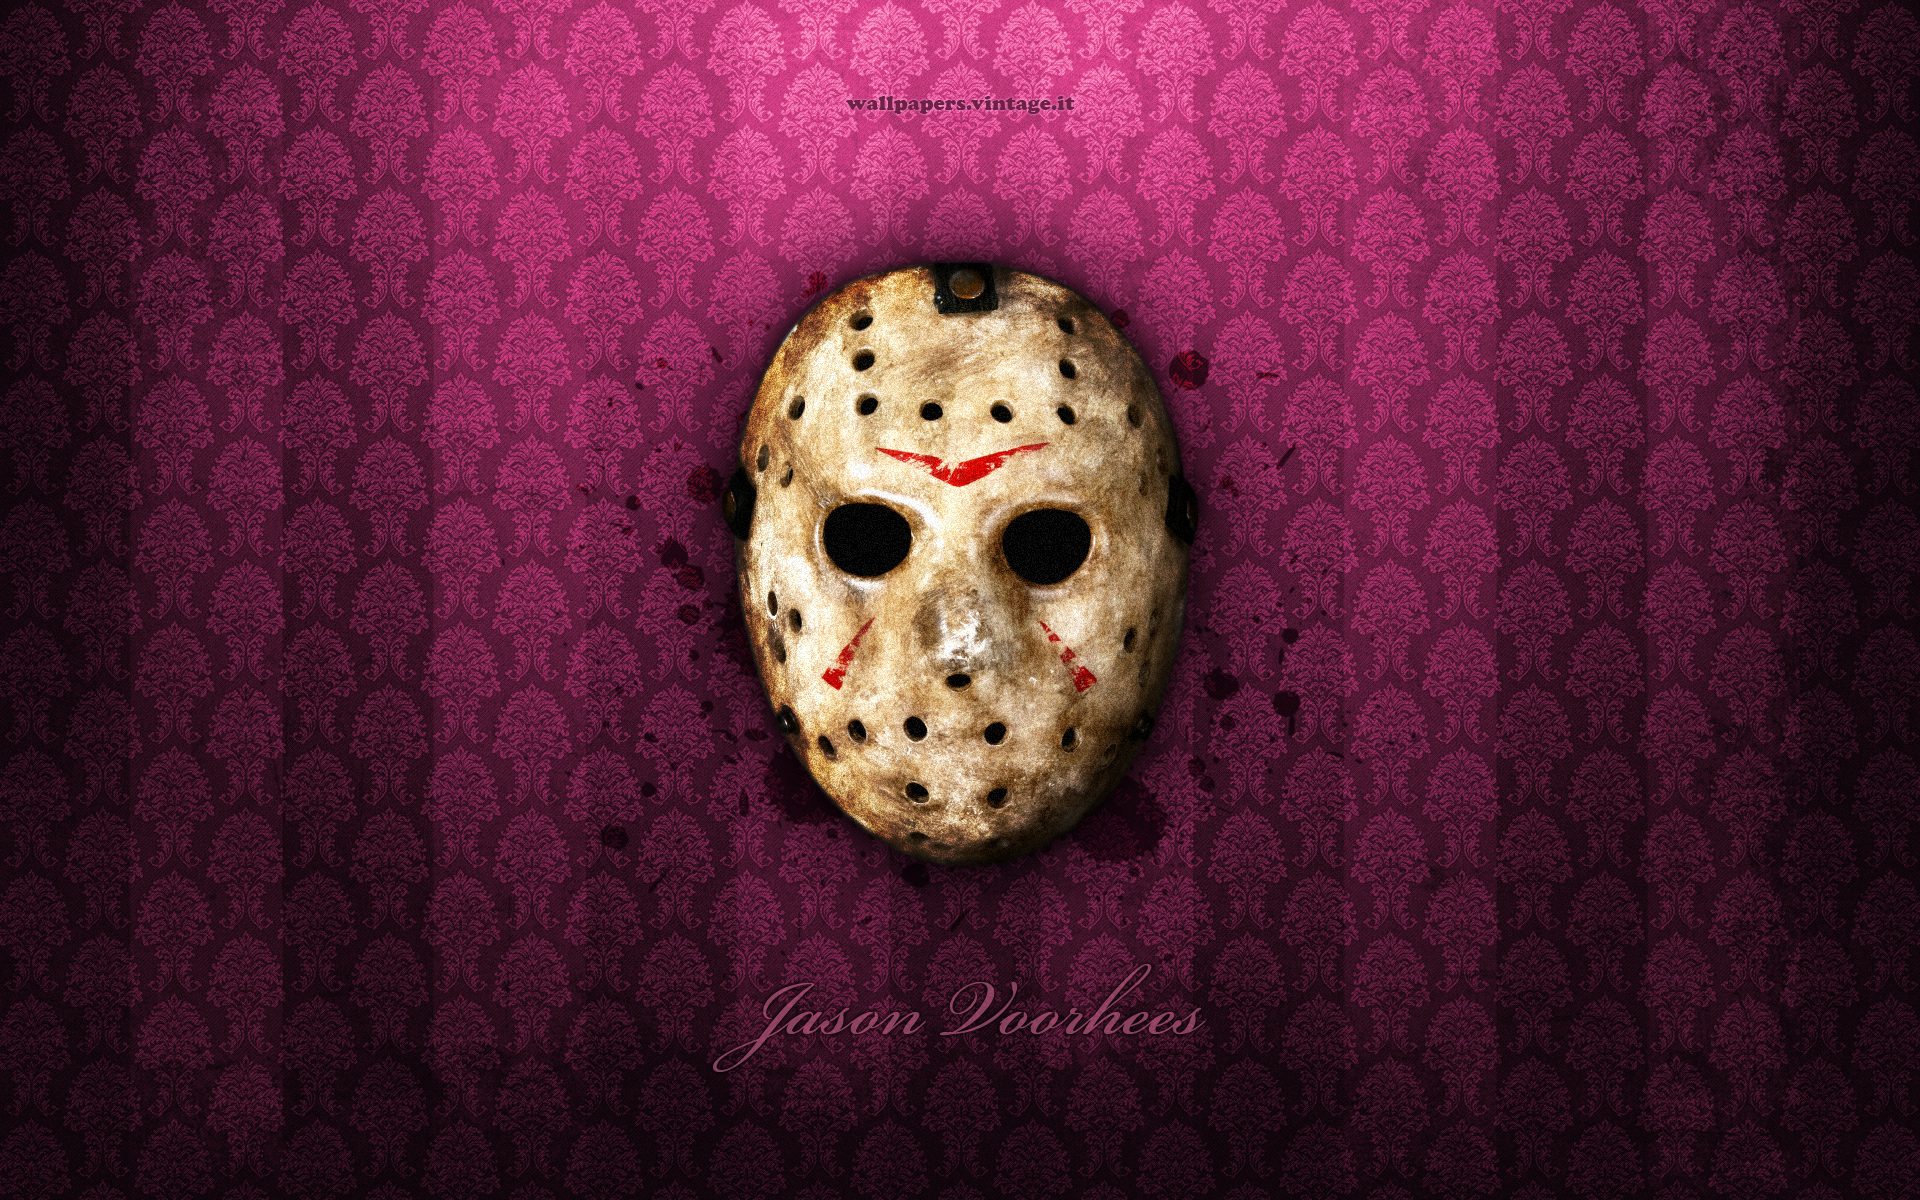 friday the 13th vintage wallpaper - free desktop hd ipad iphone